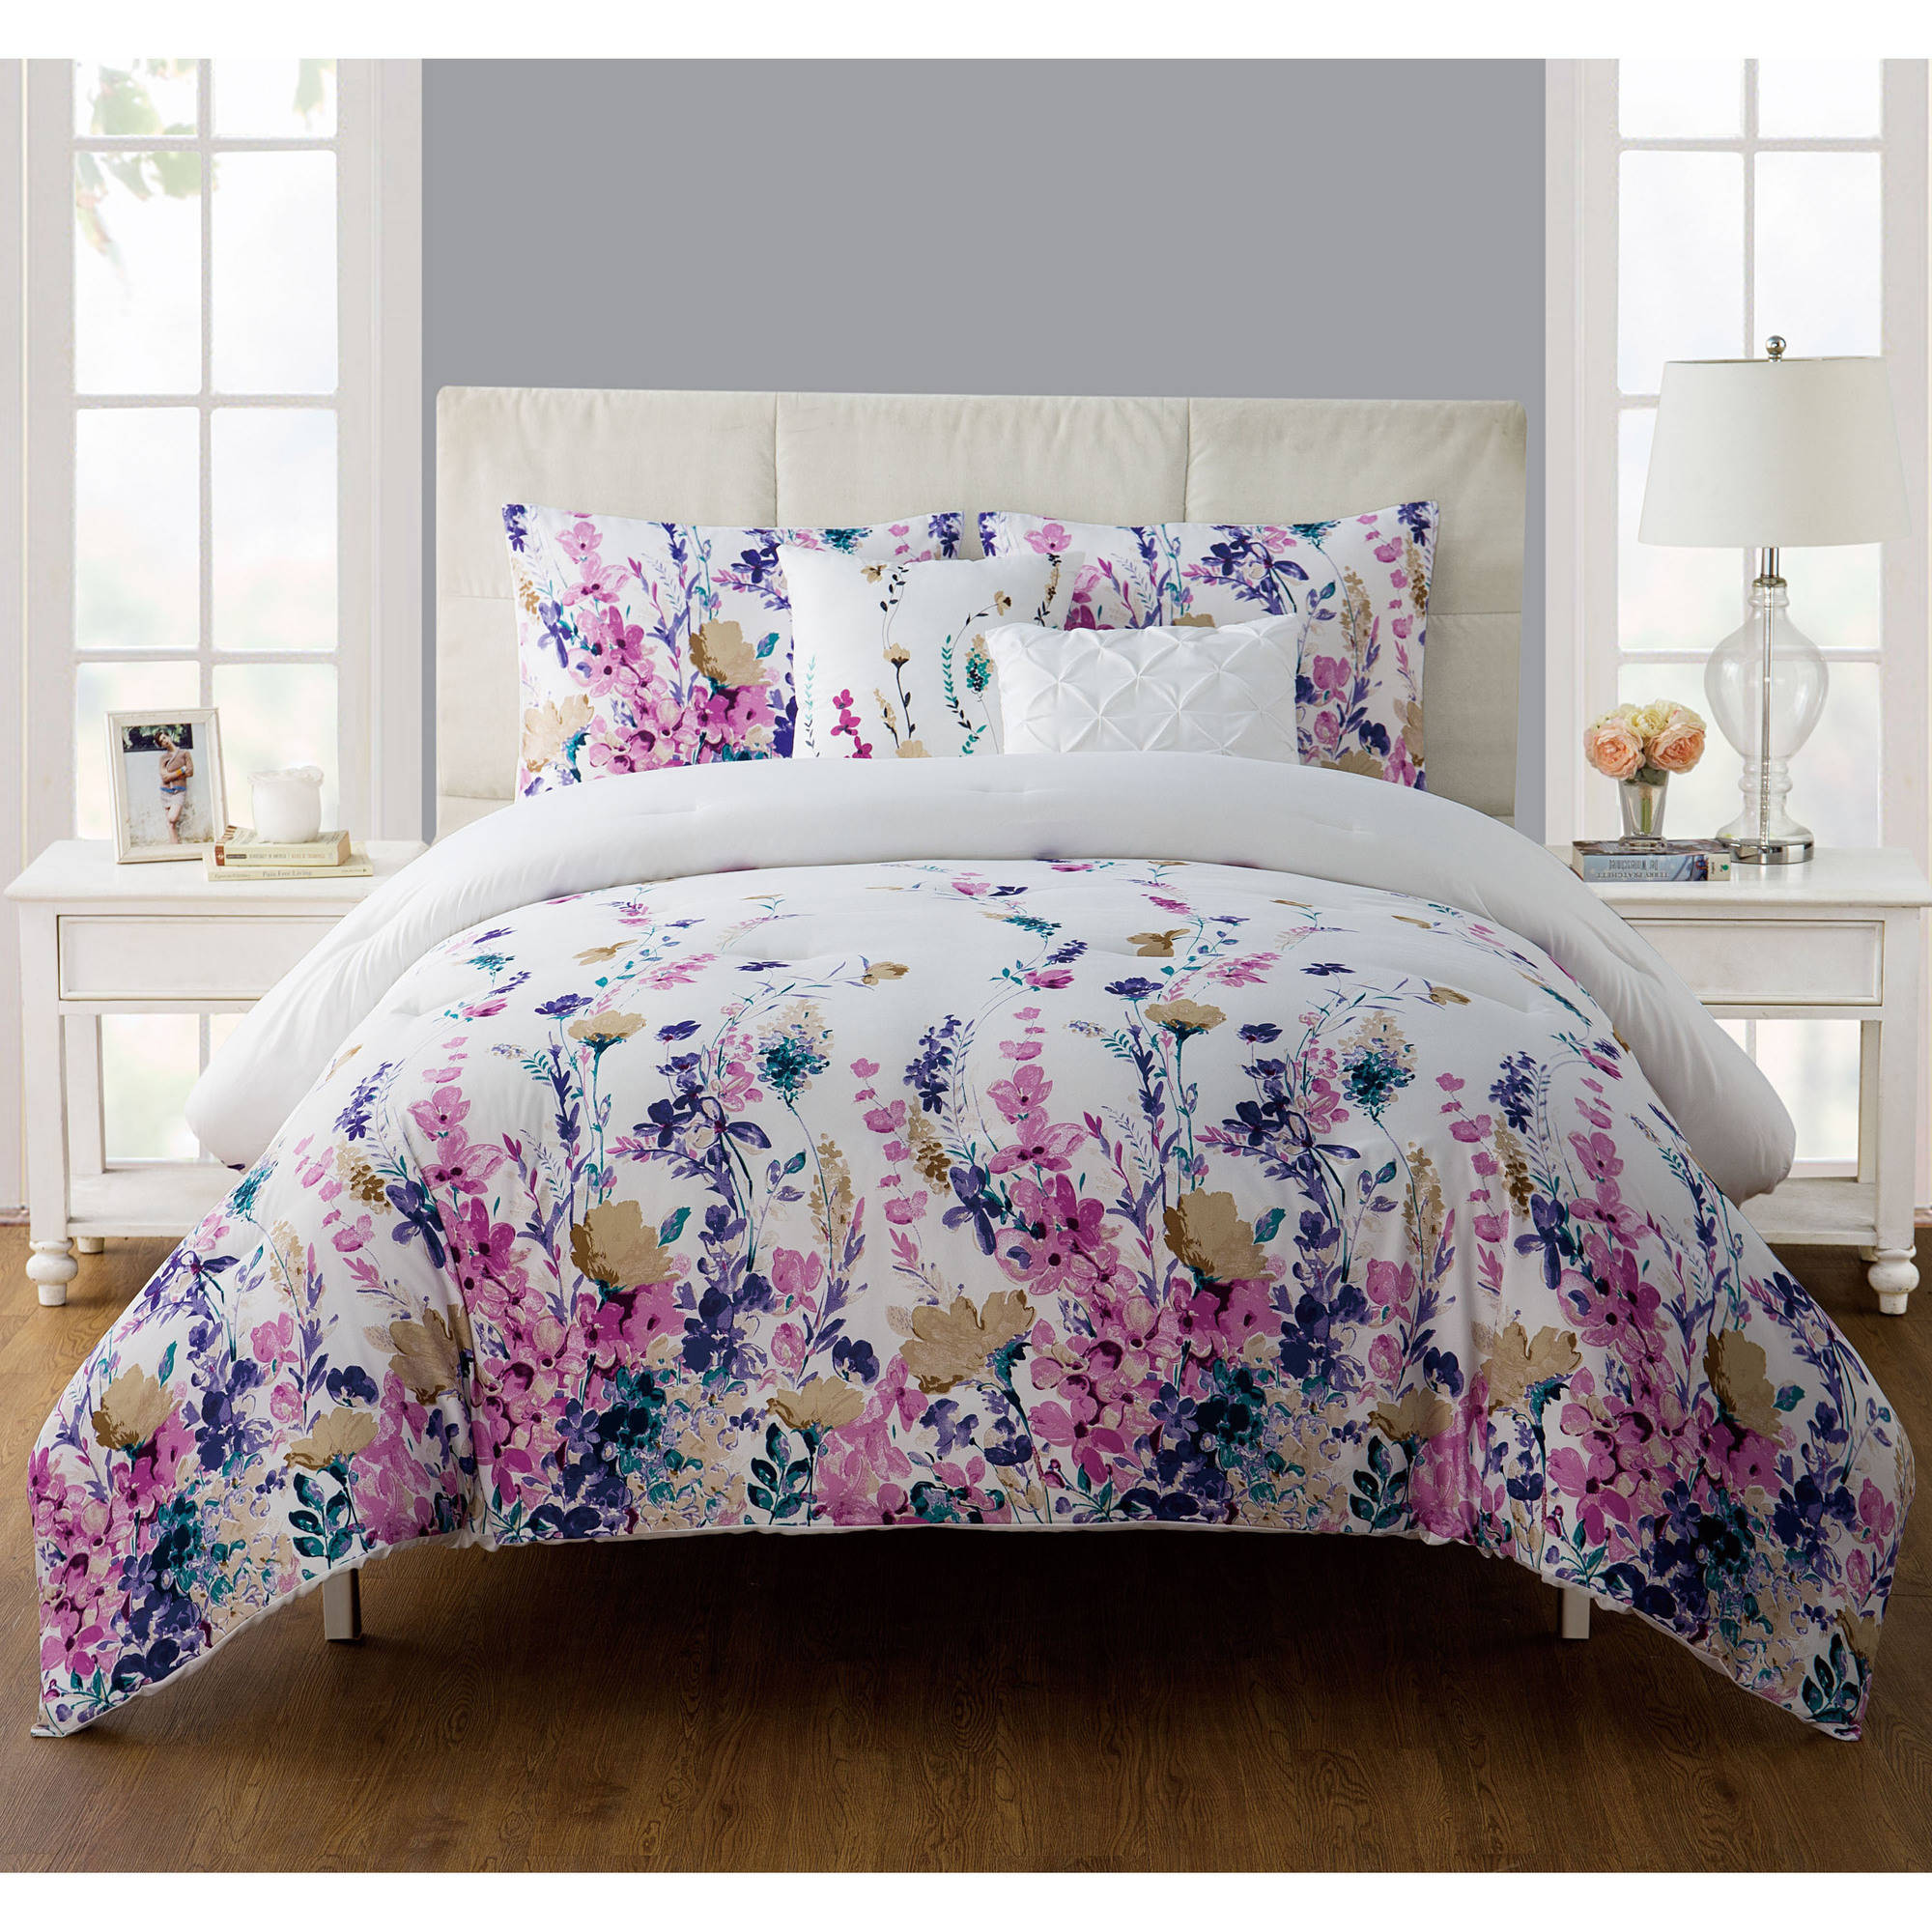 Vcny Home Misha Multi Colored Floral Bedding Comforter Set